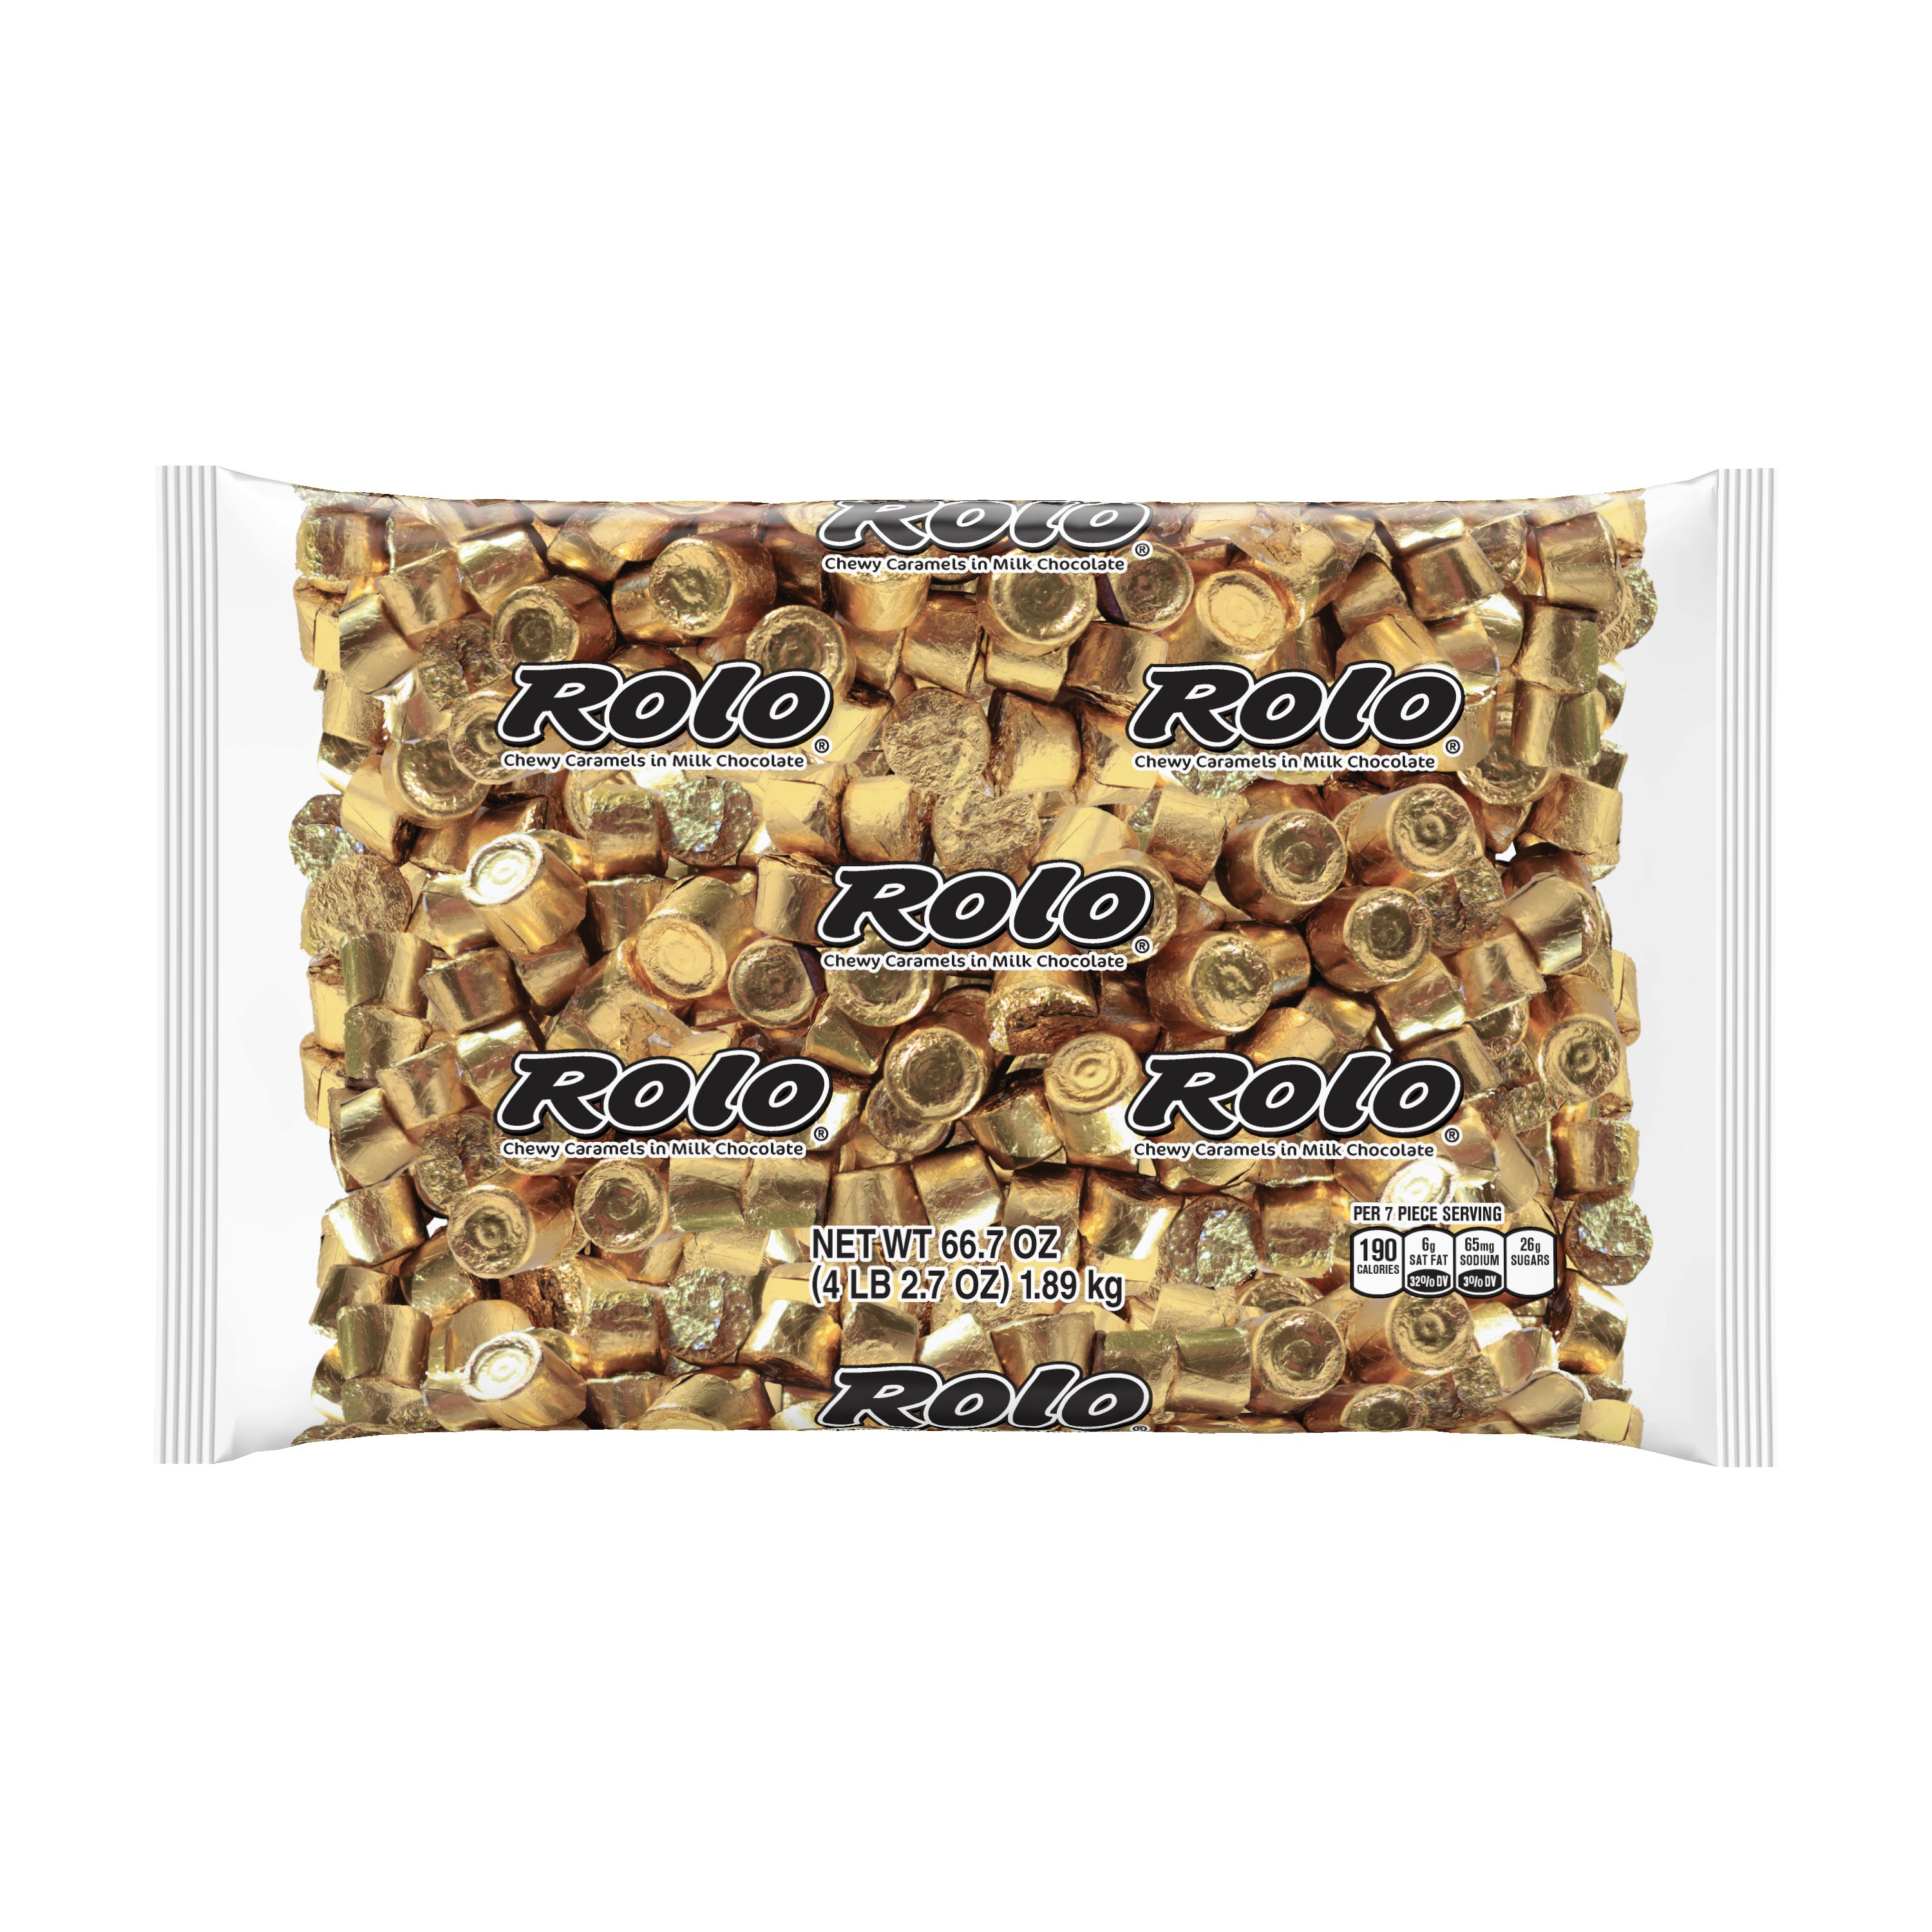 ROLO® Chocolate Caramel Candy, Individually Wrapped, 66.7 oz, Bulk Bag